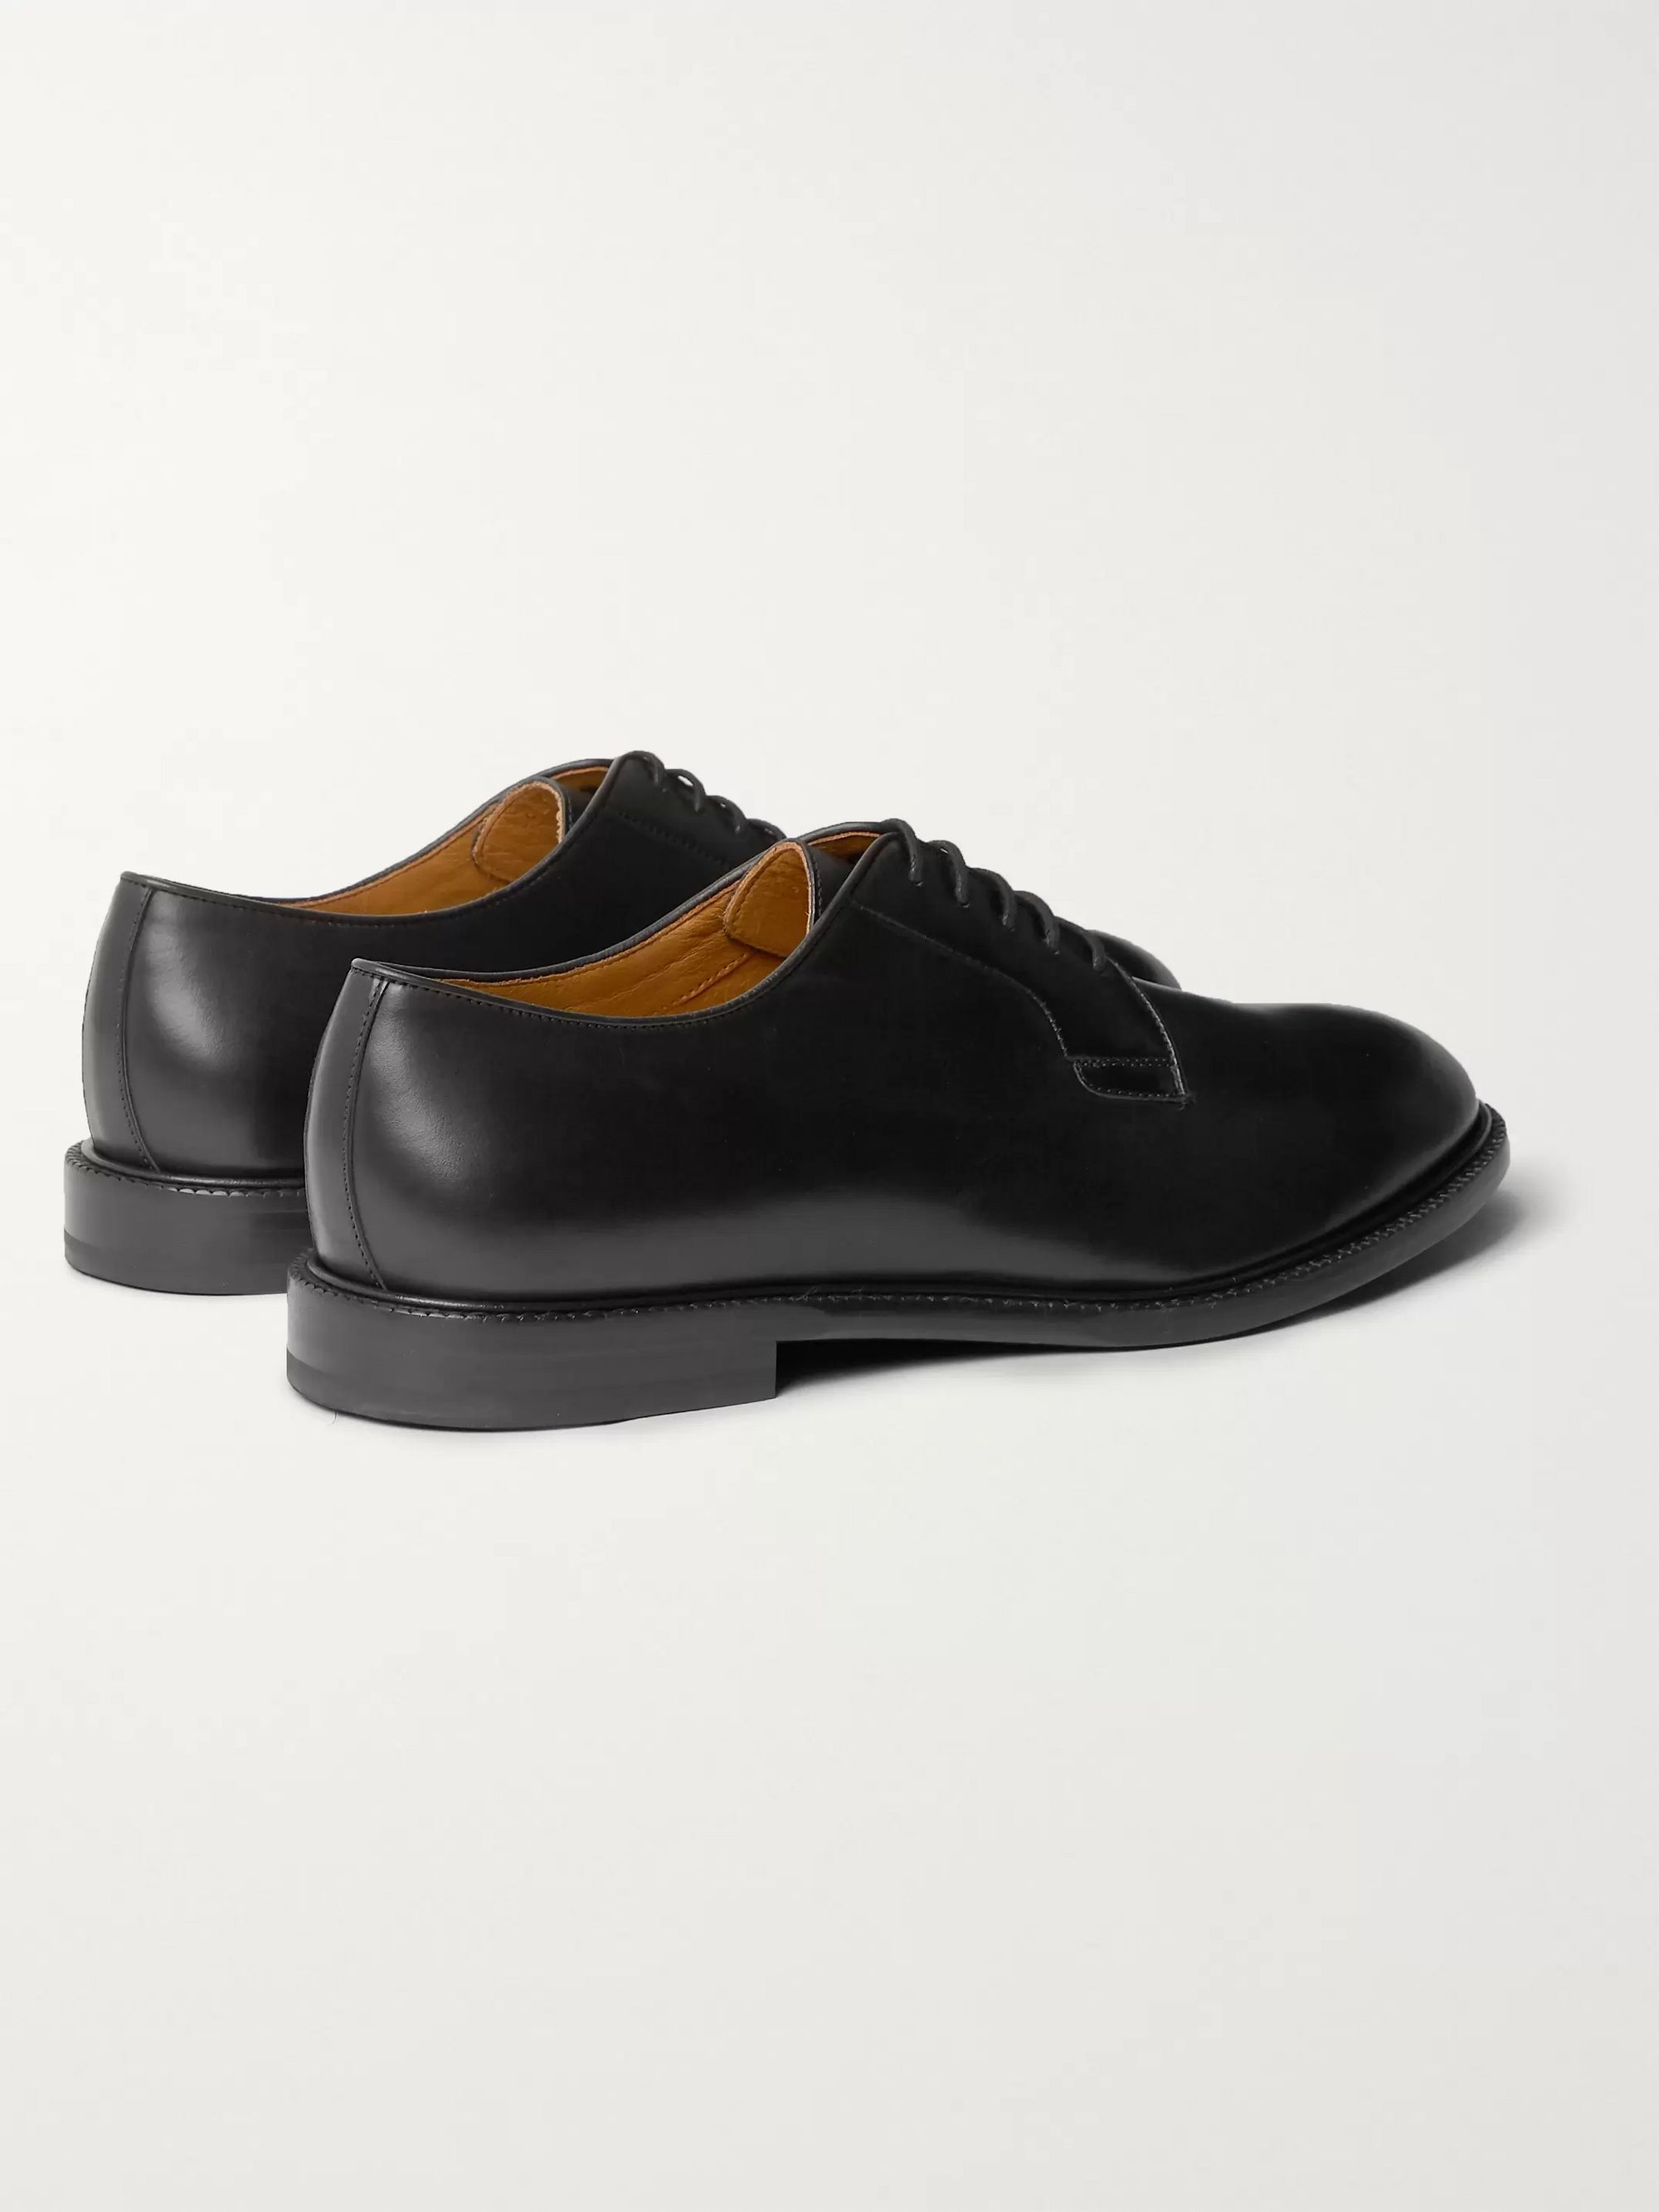 Paul Smith Gale Leather Derby Shoes